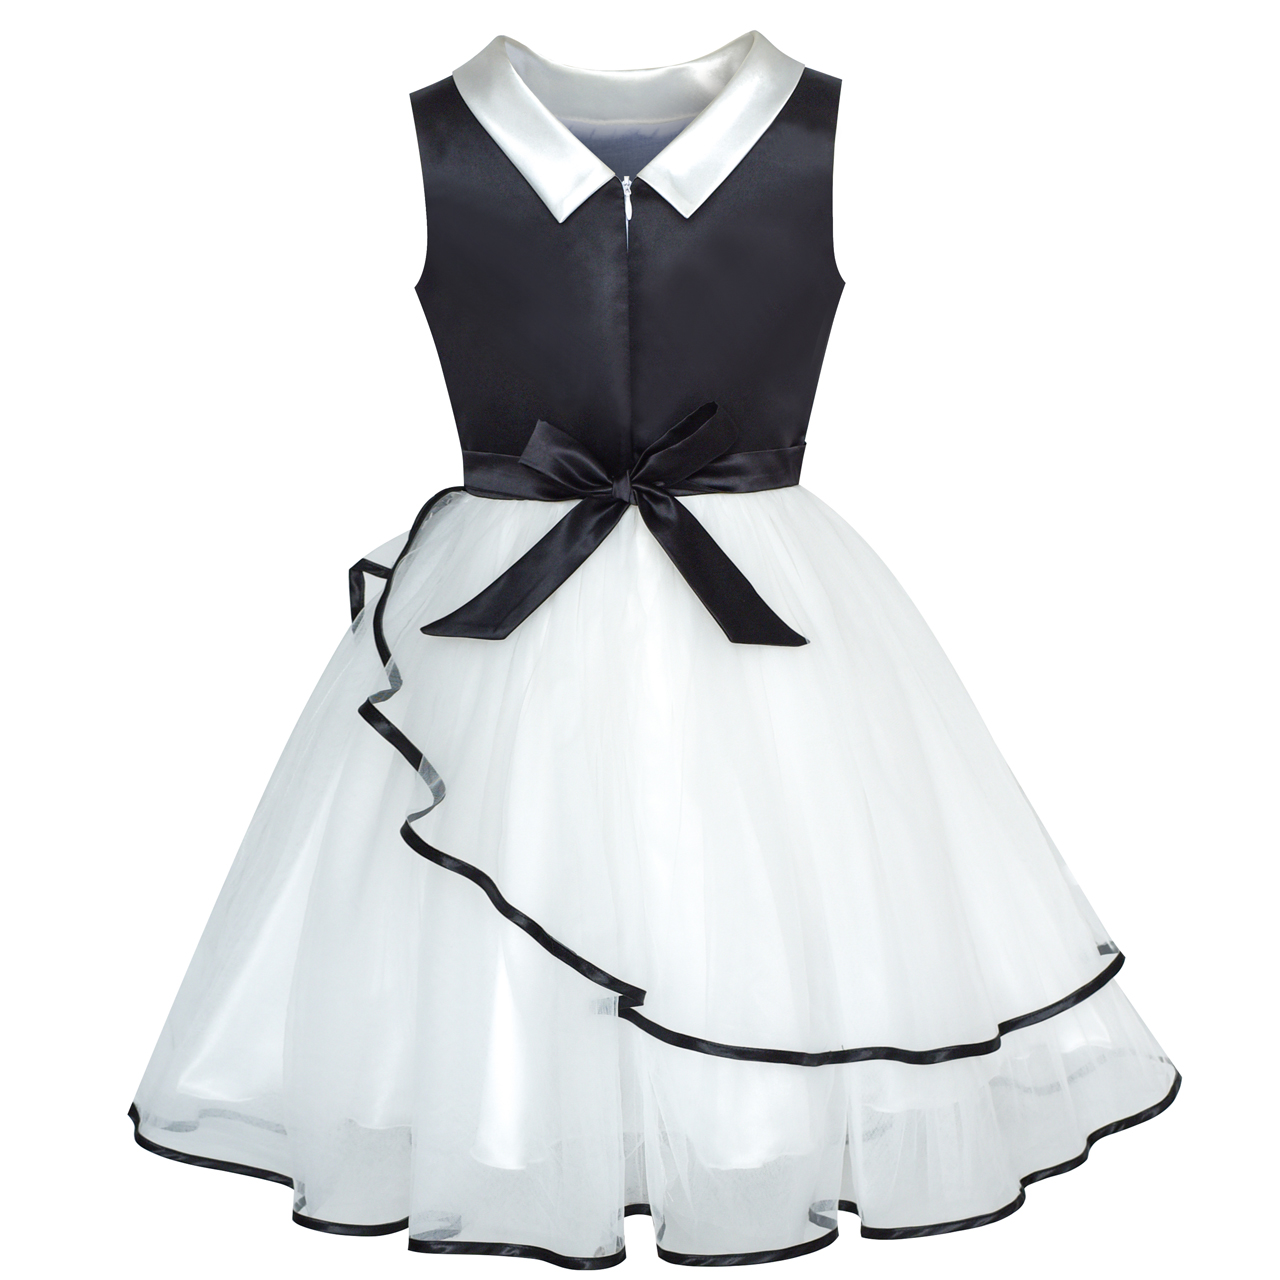 New Girls White/&Black Summer Party Pageant Dress 12 Months to 3 Years